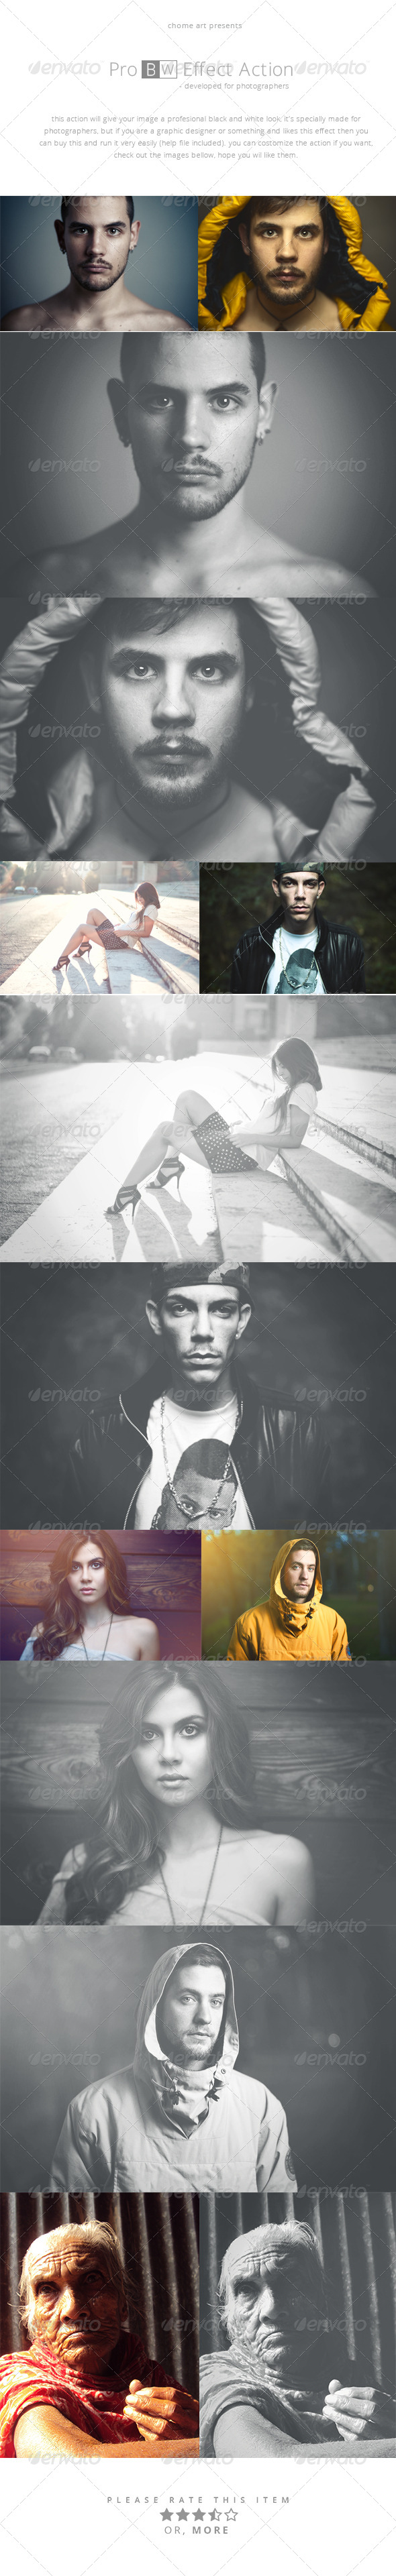 GraphicRiver Pro BW Effect Action 8586021